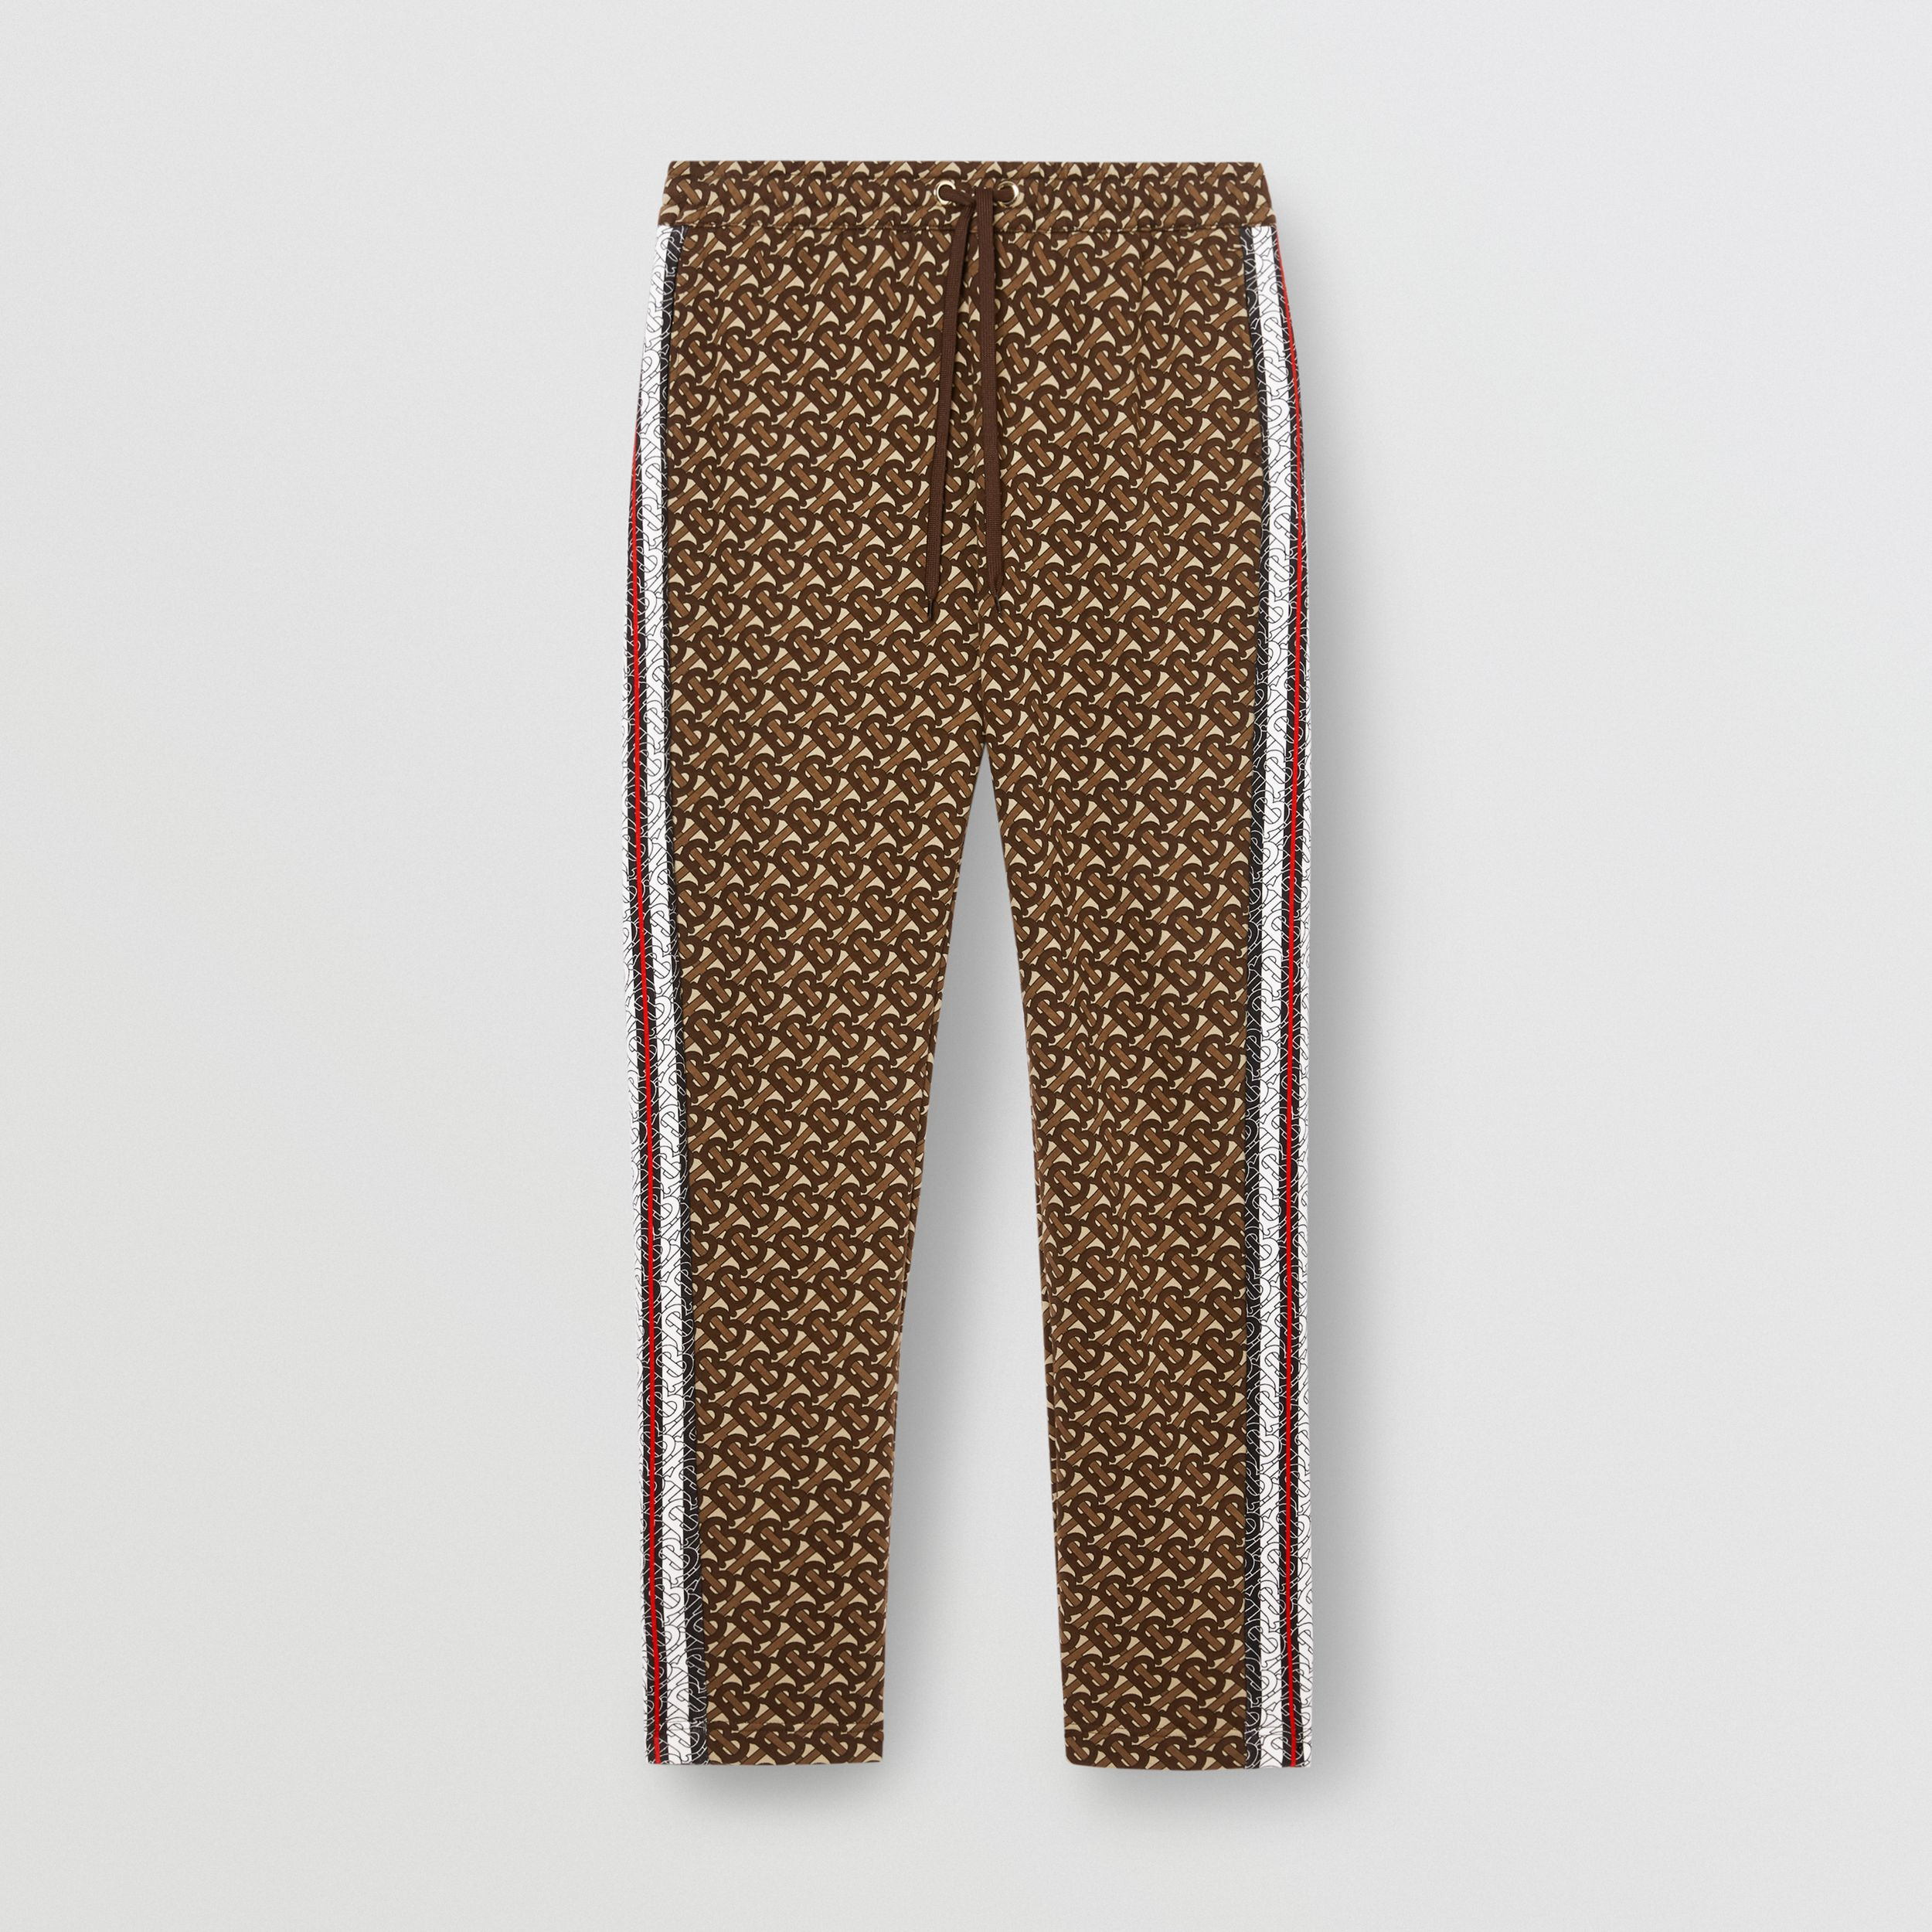 Monogram Stripe Print Cotton Jogging Pants in Bridle Brown - Men | Burberry United States - 4